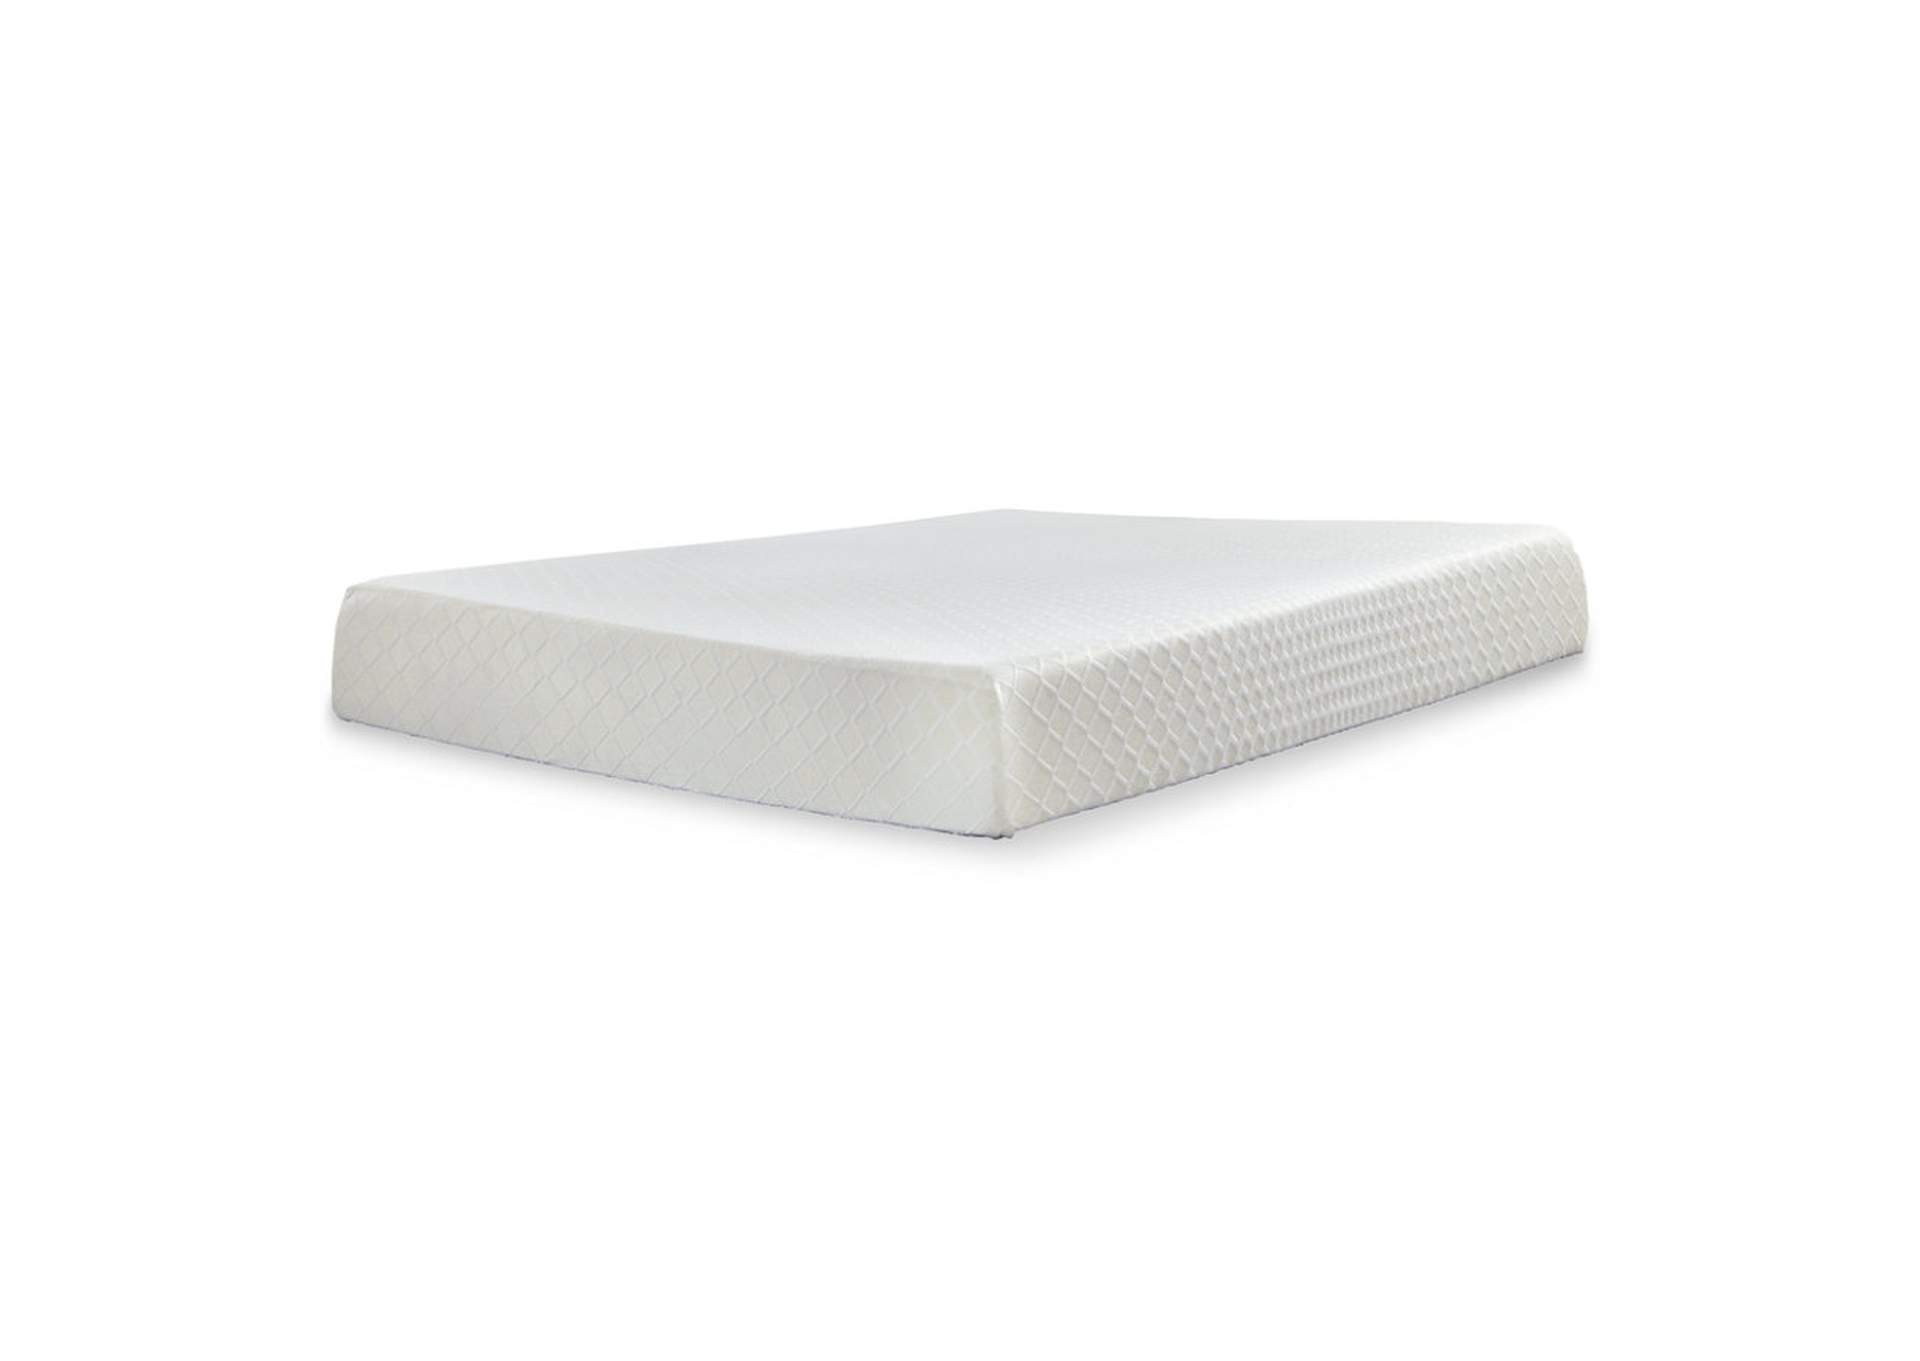 10 Inch Chime Memory Foam White Twin Mattress,Sierra Sleep by Ashley